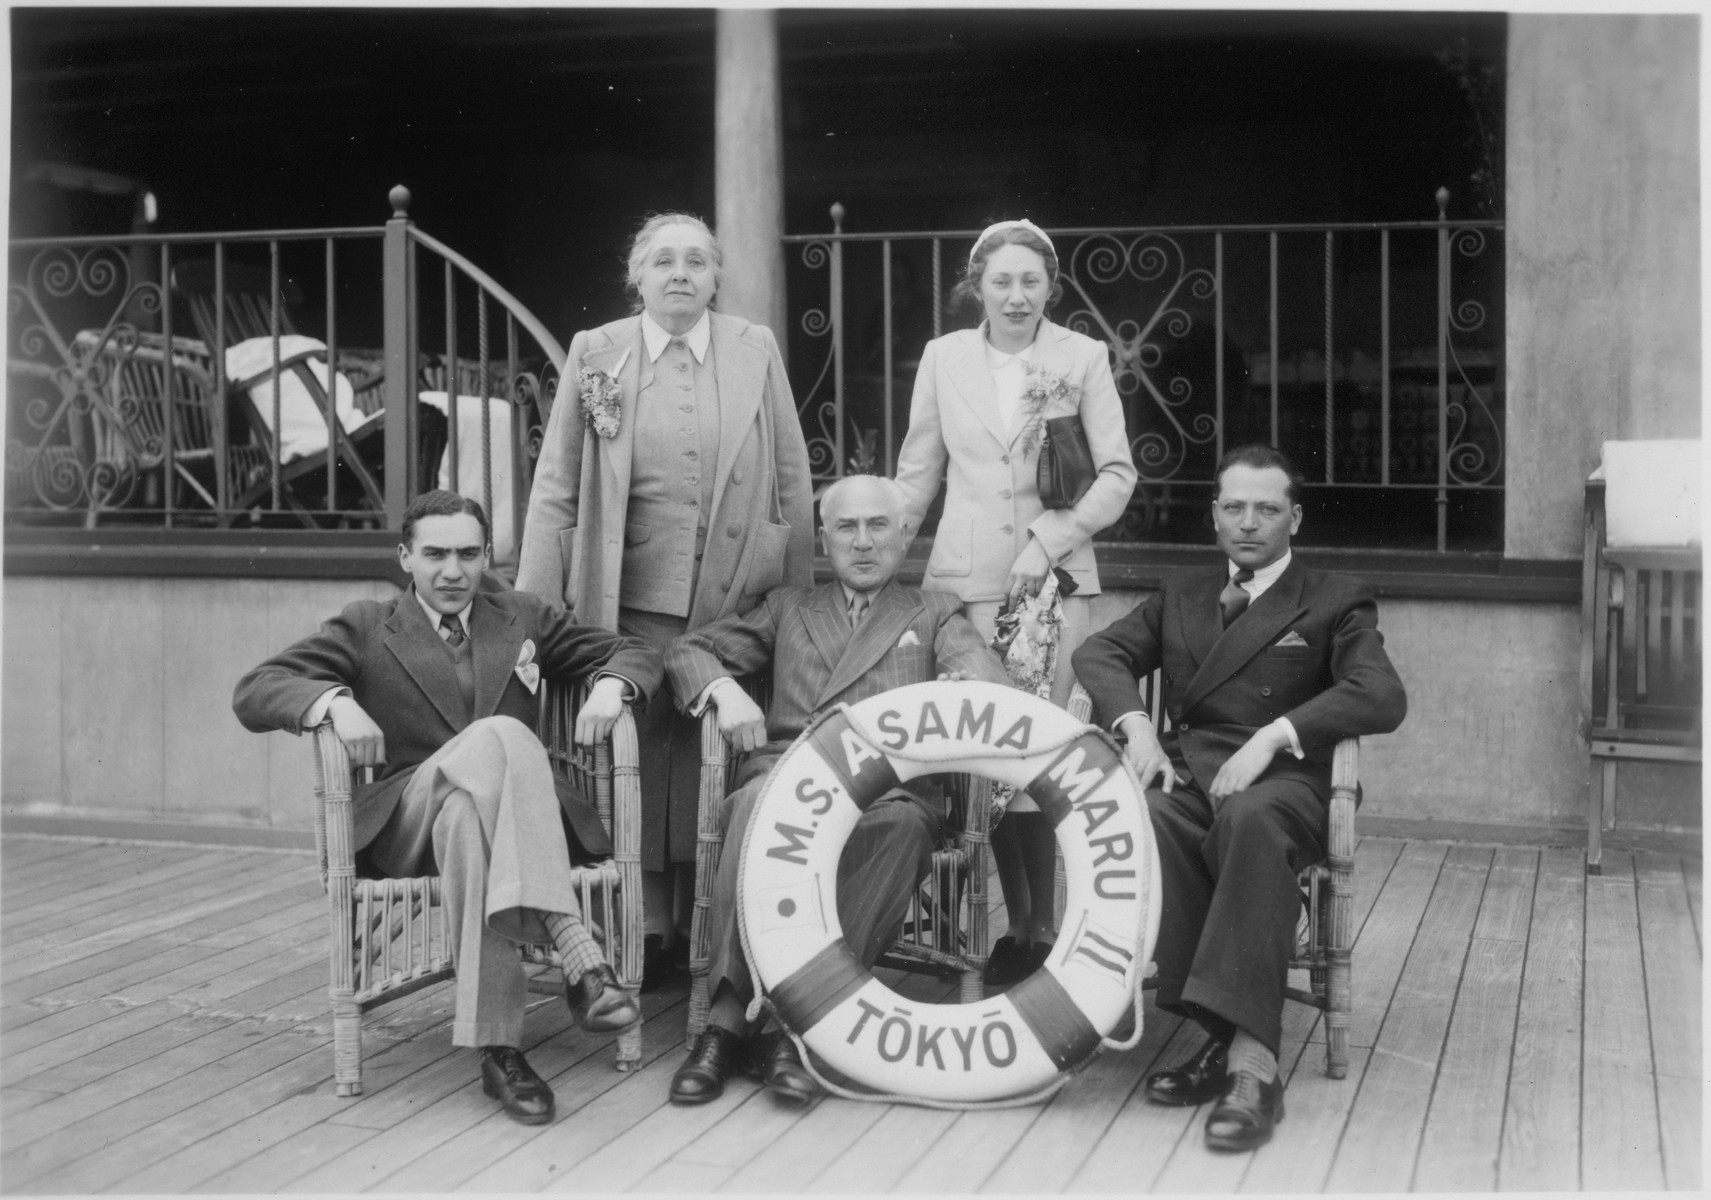 A group of Jewish refugees gather on the deck of the Asama Maru en toute from Japan to Canada.  Pictured in the front row, from left to right: Bronislaw and Zelik Honigberg, and Salomon Fishaut.   In the back row, from left to right: Maryla Honigberg and Paulina (Honigberg) Fishaut.